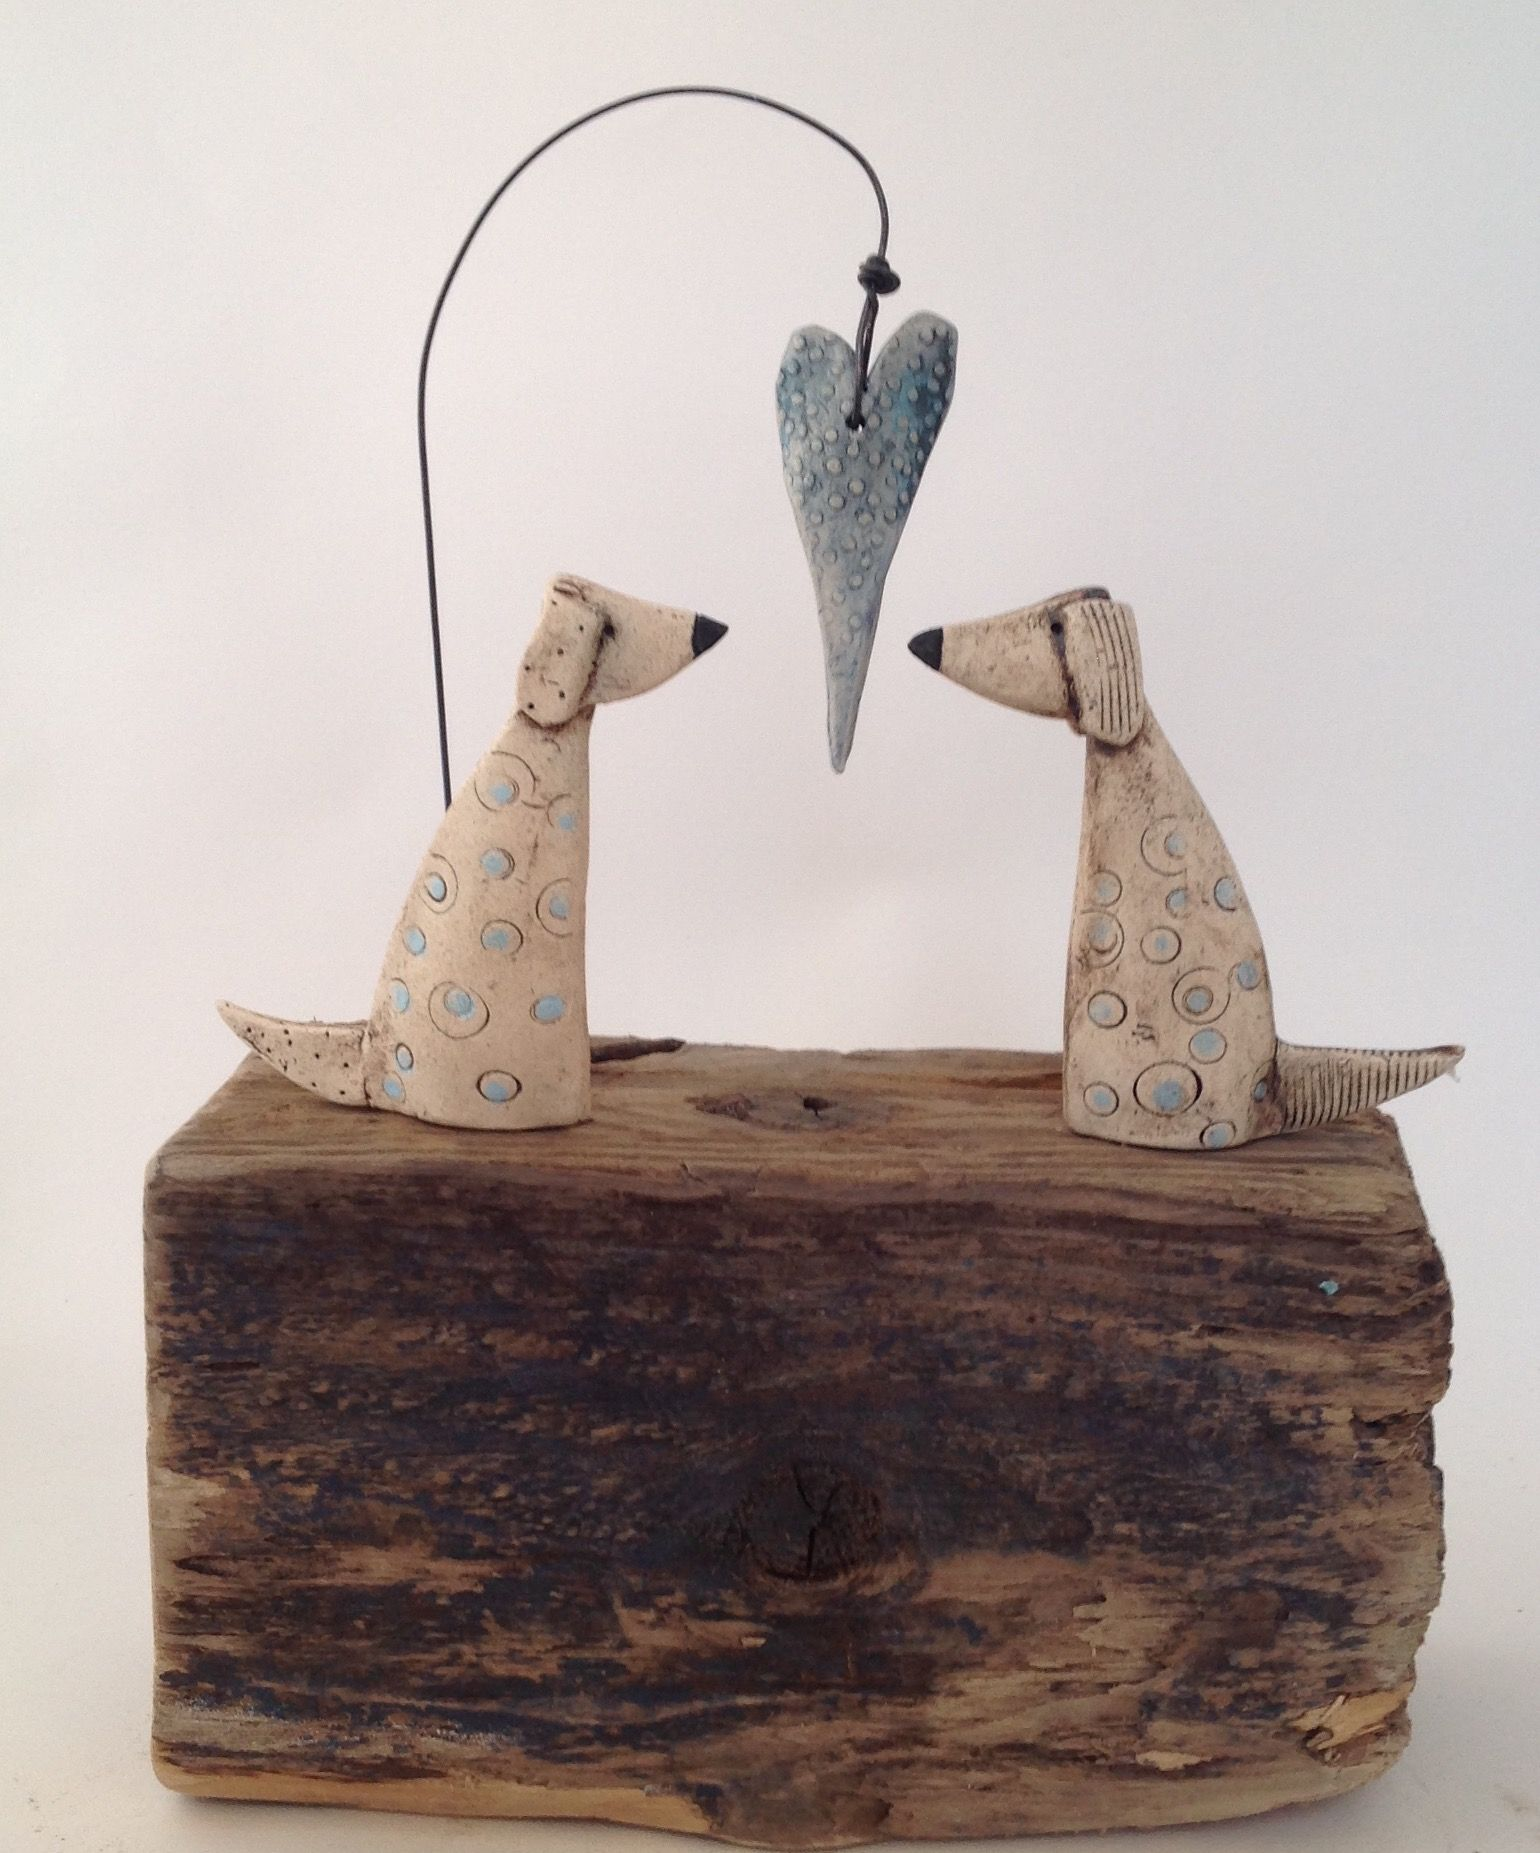 Pin by Mizzi Stumvoll on Commissions   Clay crafts air dry